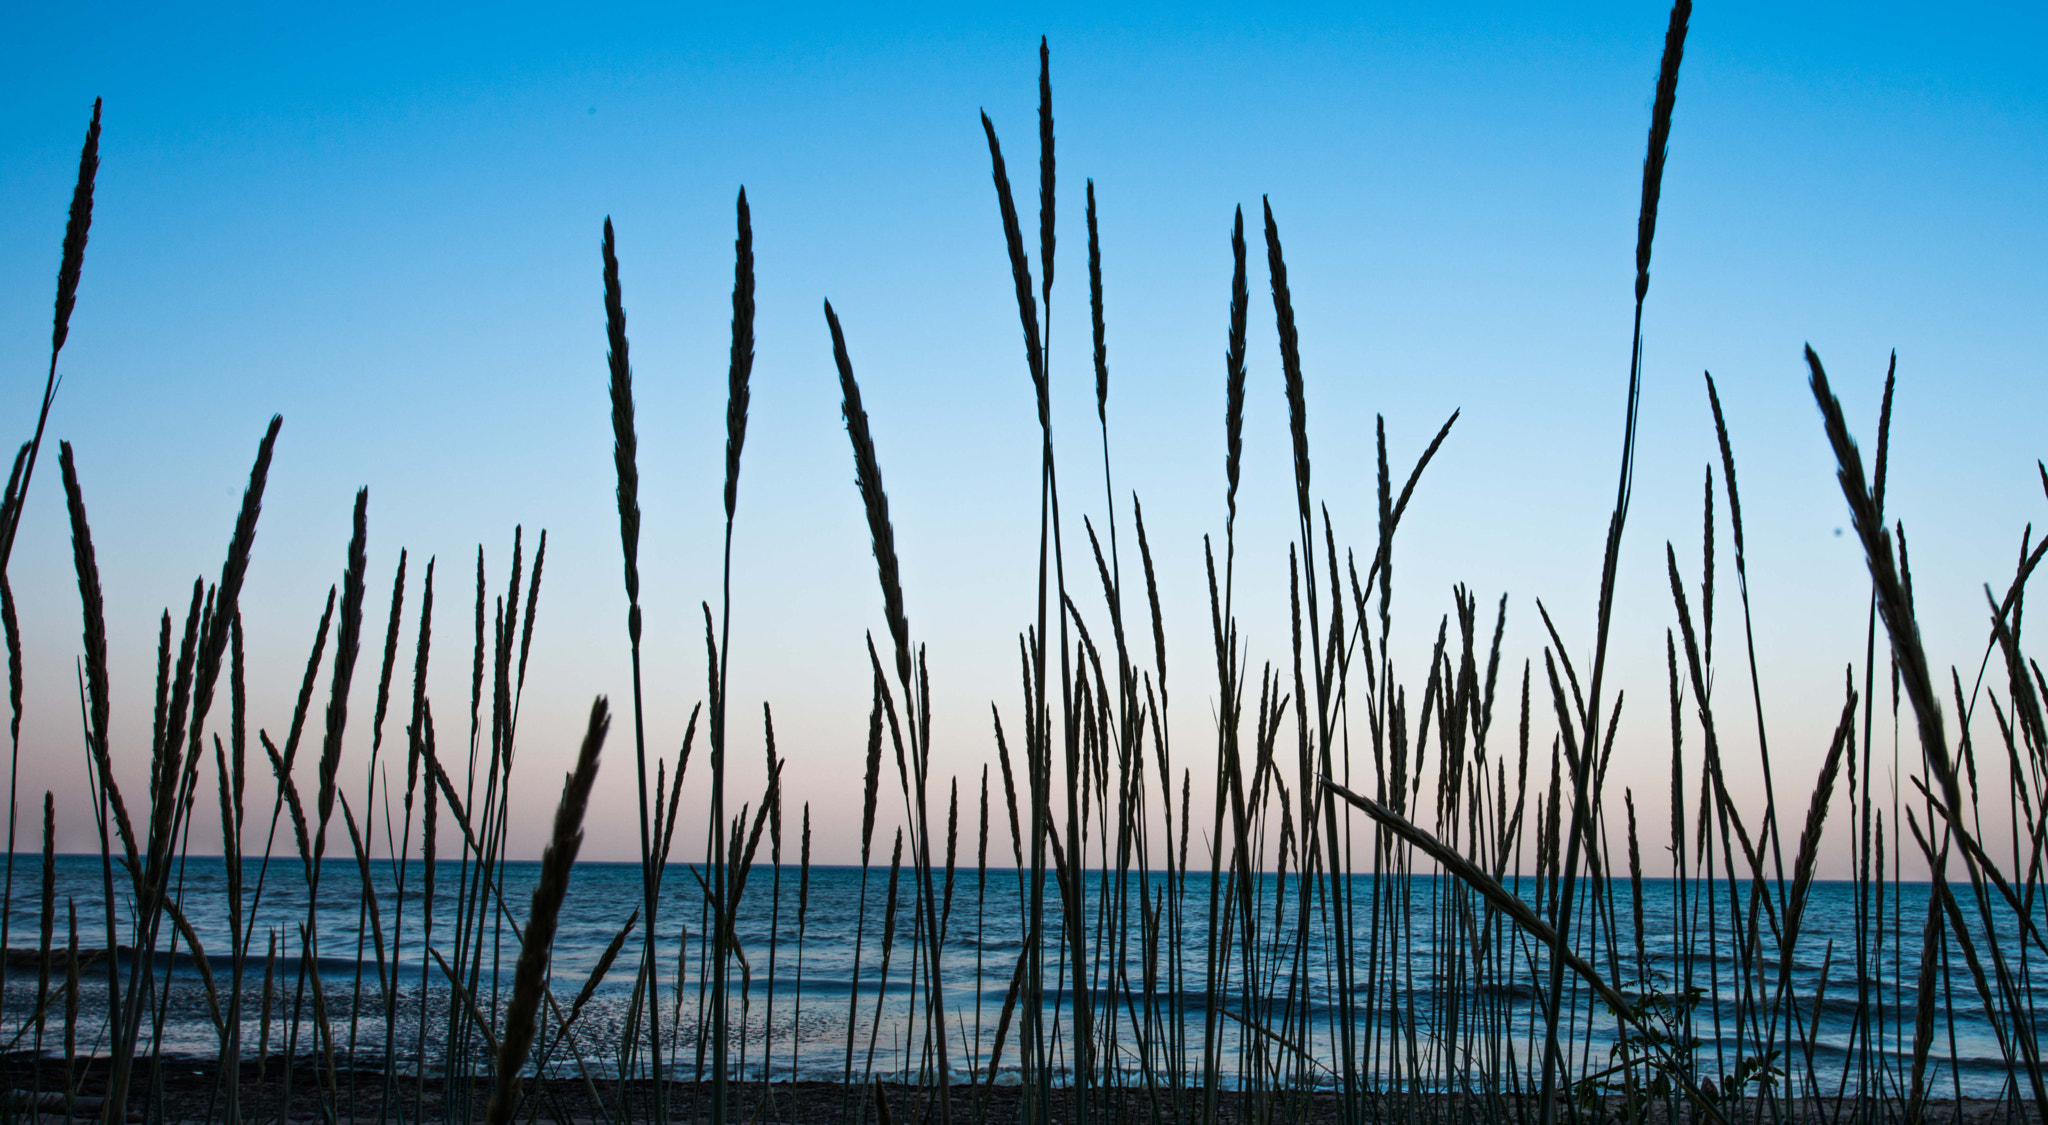 Photograph Lake Michigan evening by Ryan Sheets on 500px